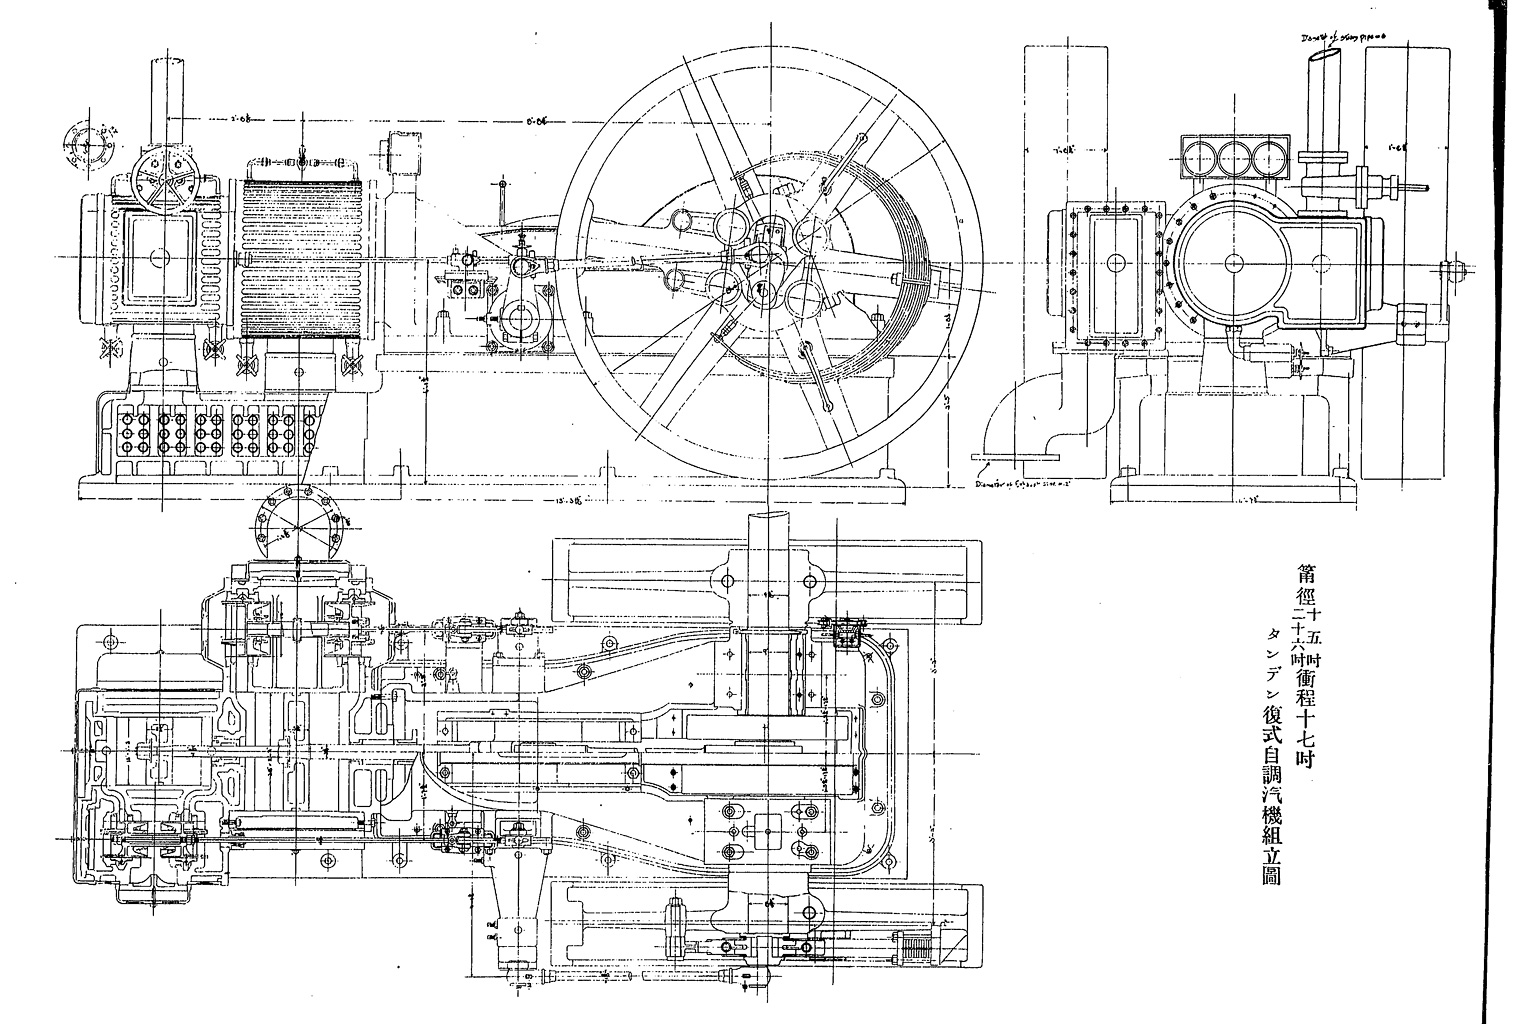 hight resolution of assembly drawing of tandem self regulating steam engine exhibited by shibaura engineering works